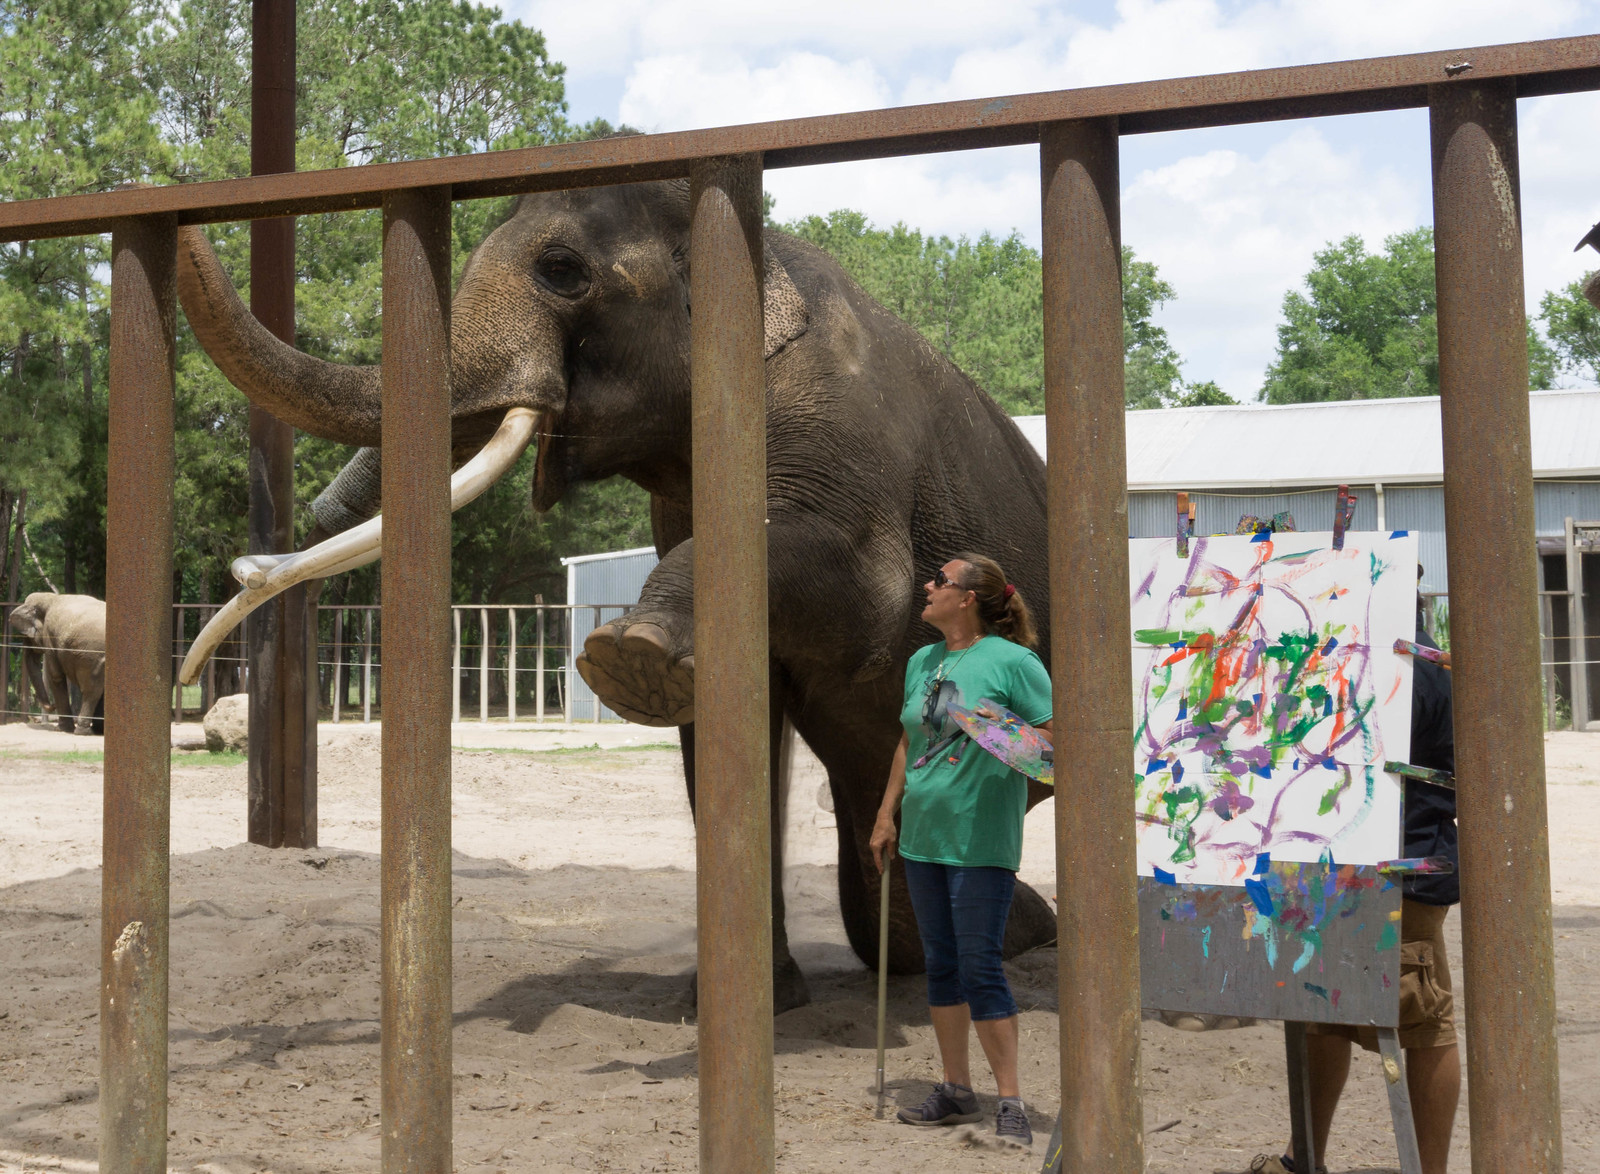 Luke the Asian Elephant Paints - All About Elephants at Two Tails Ranch, Williston, Fla., April 30, 2017